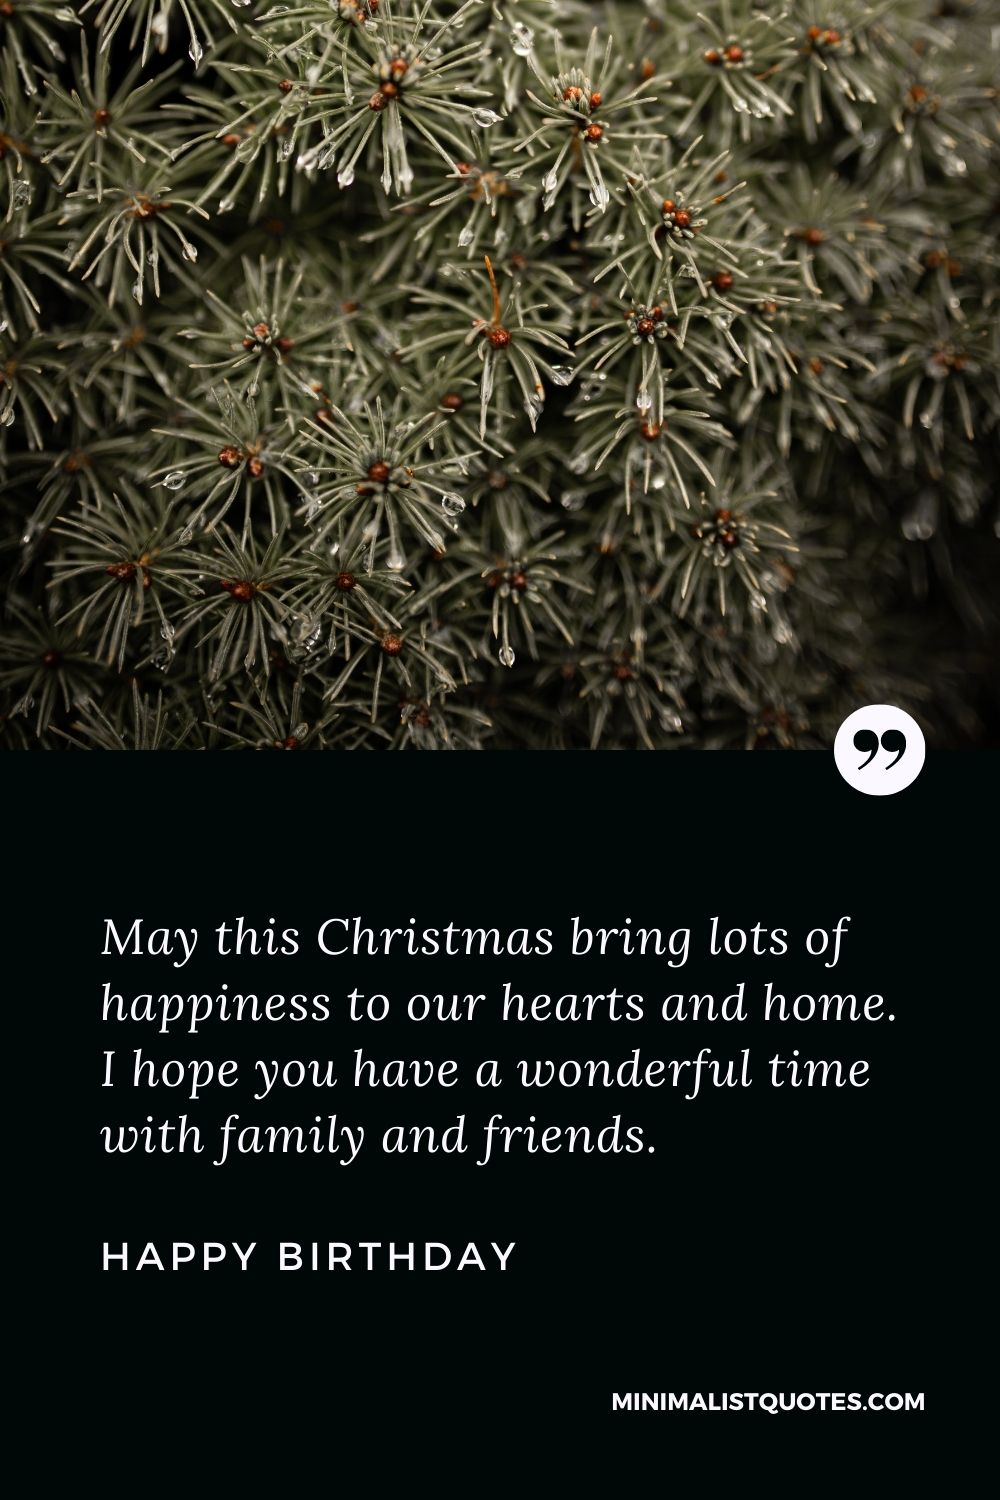 Christmas Wish & Message With HD Image: May this Christmas bring lots of happiness to our hearts and home. I hope you have a wonderful time with family and friends.Merry Christmas!